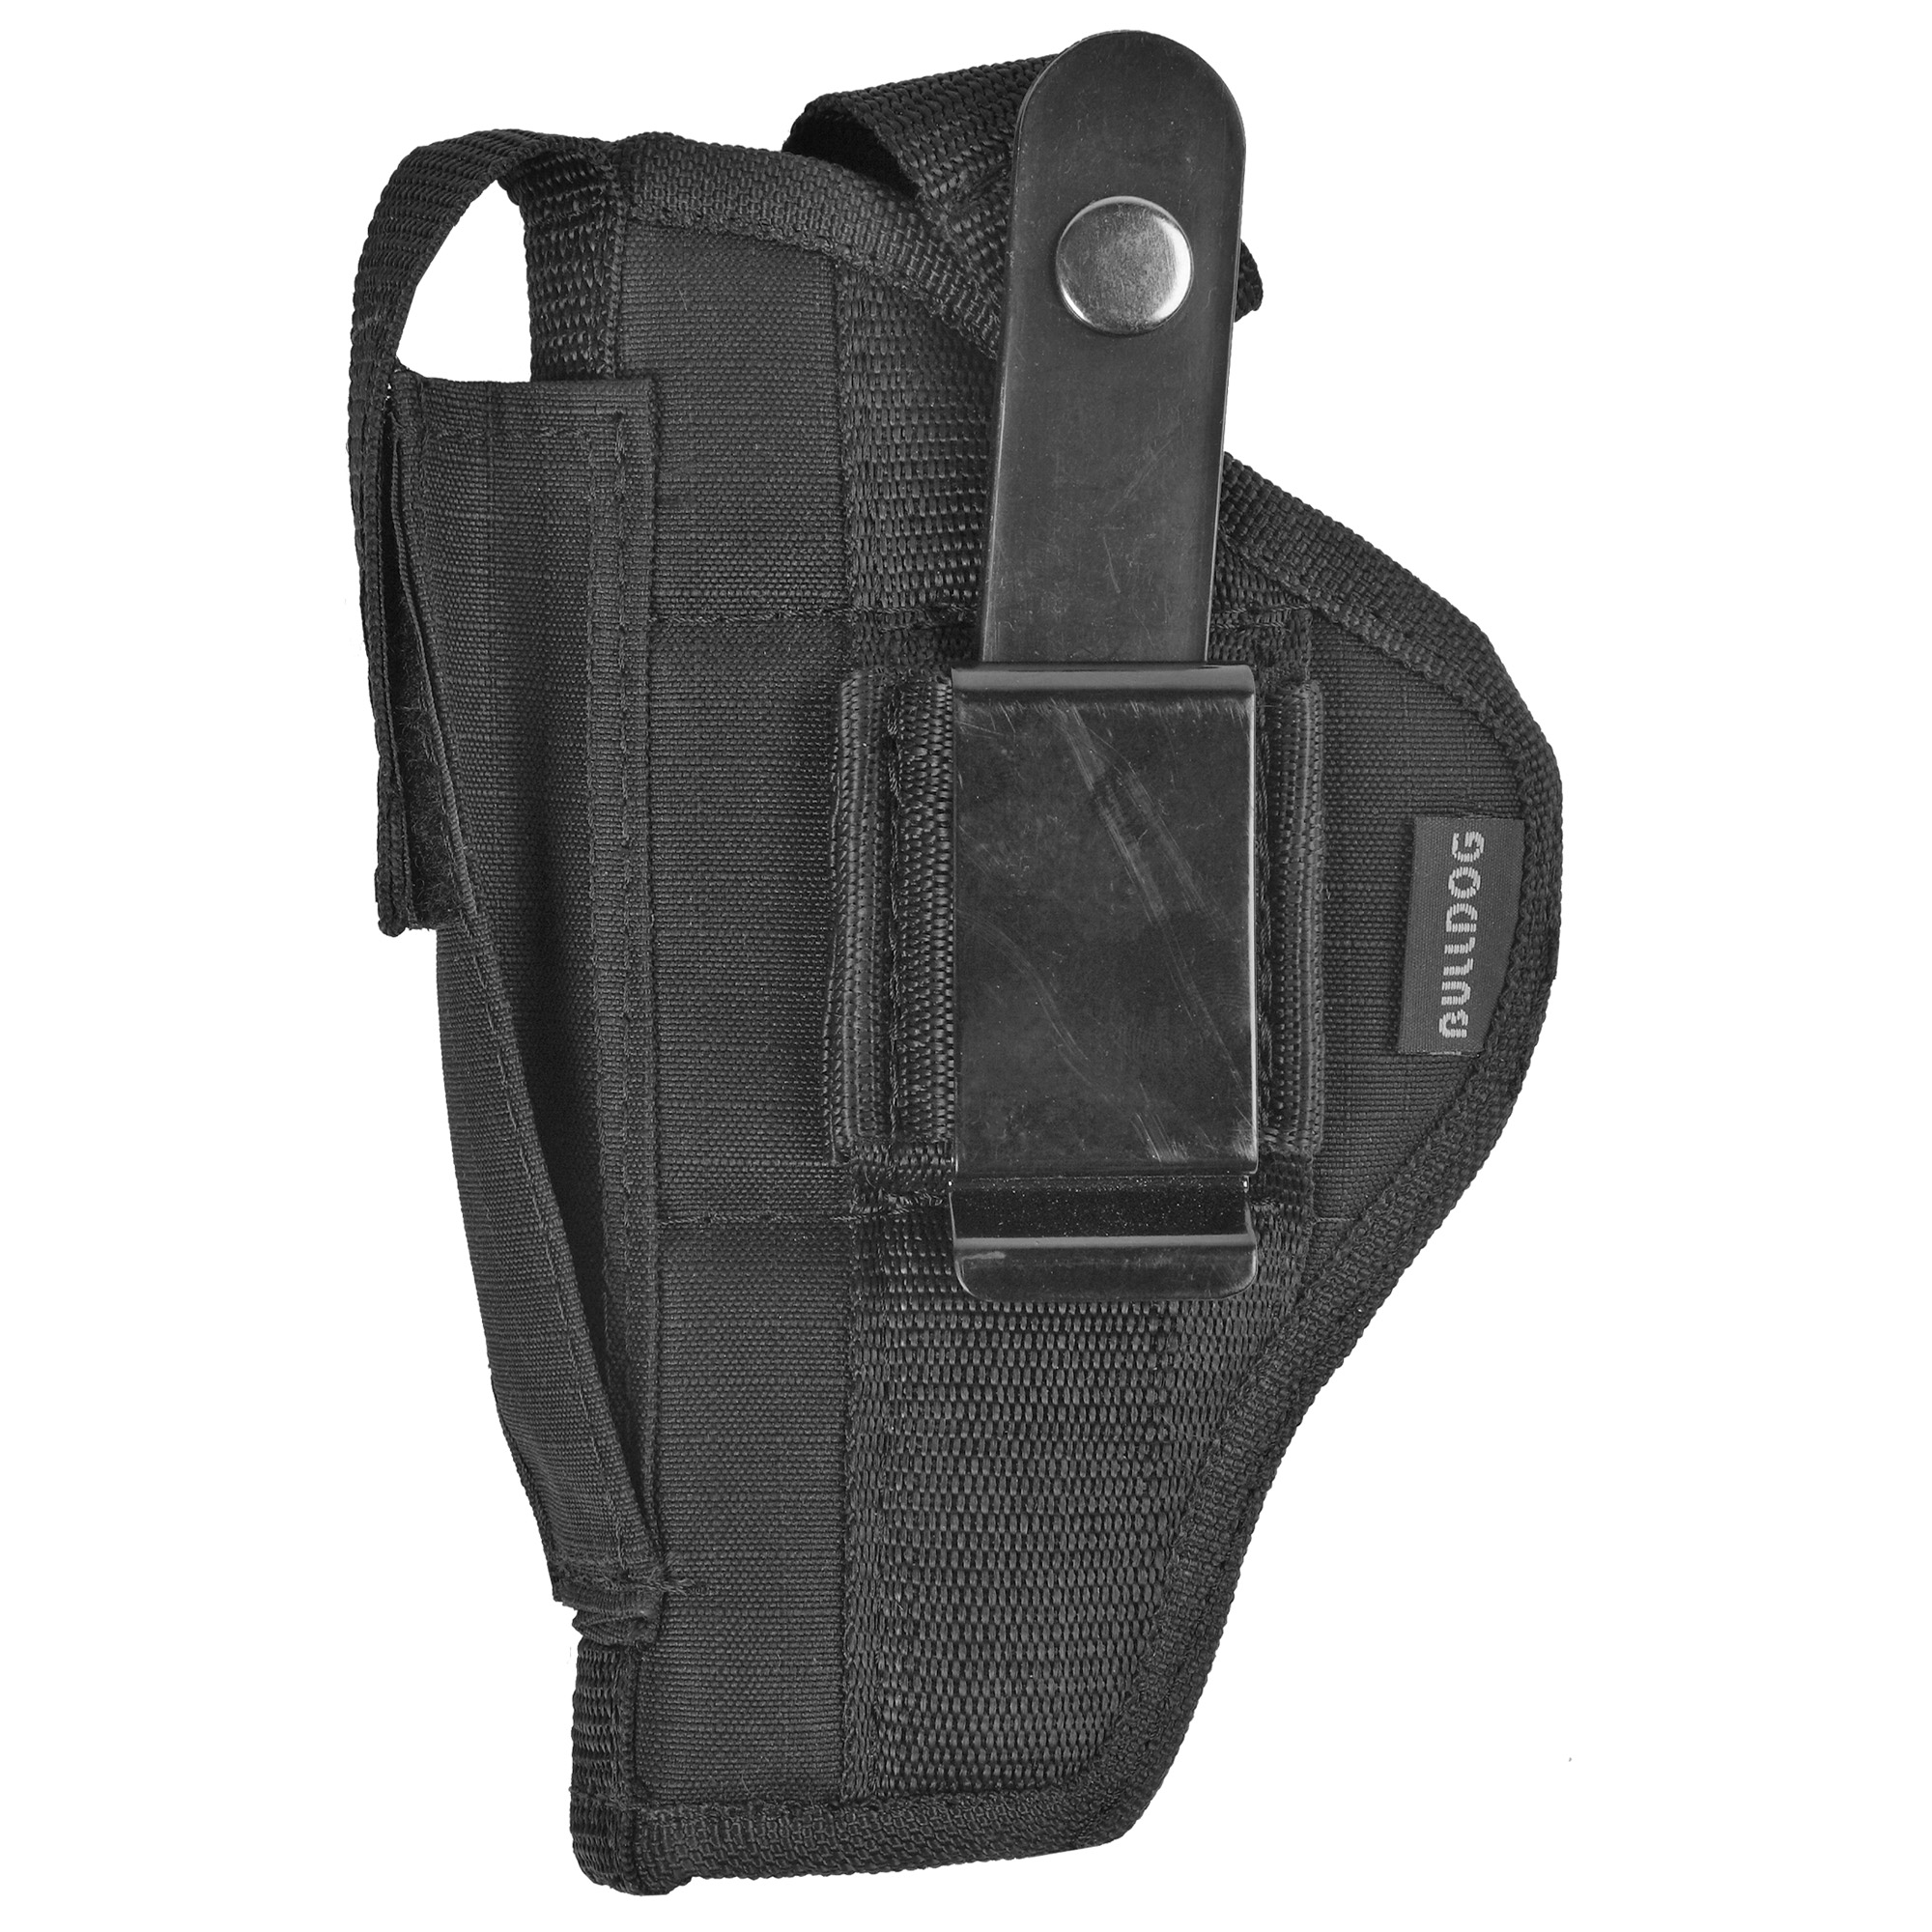 """The Extreme Pistol Holster with its durable nylon water resistant outer shell and top grade fused padding provides the ultimate fit"""" comfort and protection for you and your pistol."""